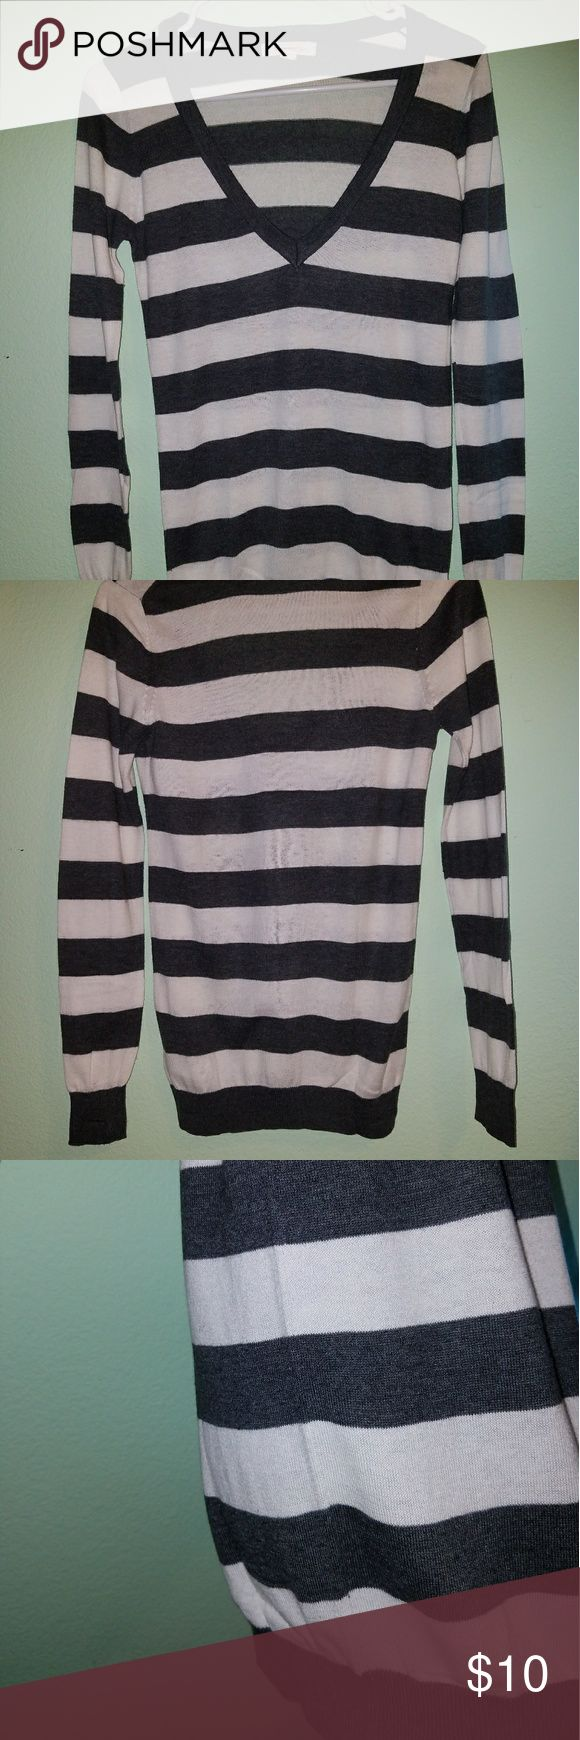 """✖ Gray&Cream Long Sleeve Top Long Sleeve Top ✖ Forever21 size S  ⚠ Good condition, BUT priced low because some of the fuzzies are bunching up (not noticeable when worn)  • The stripes are dark gray and a very light cream color (not pure white) • Only been worn a few times • The stripes are 1.5"""" thick • The side picture shows the horizontal stripes are completely lined up • Material is very thin and light weight  Shoulder Width: 14"""" Bust: 30"""" Shirt Length: 25"""" Sleeve Length: 25"""" Forever 21…"""